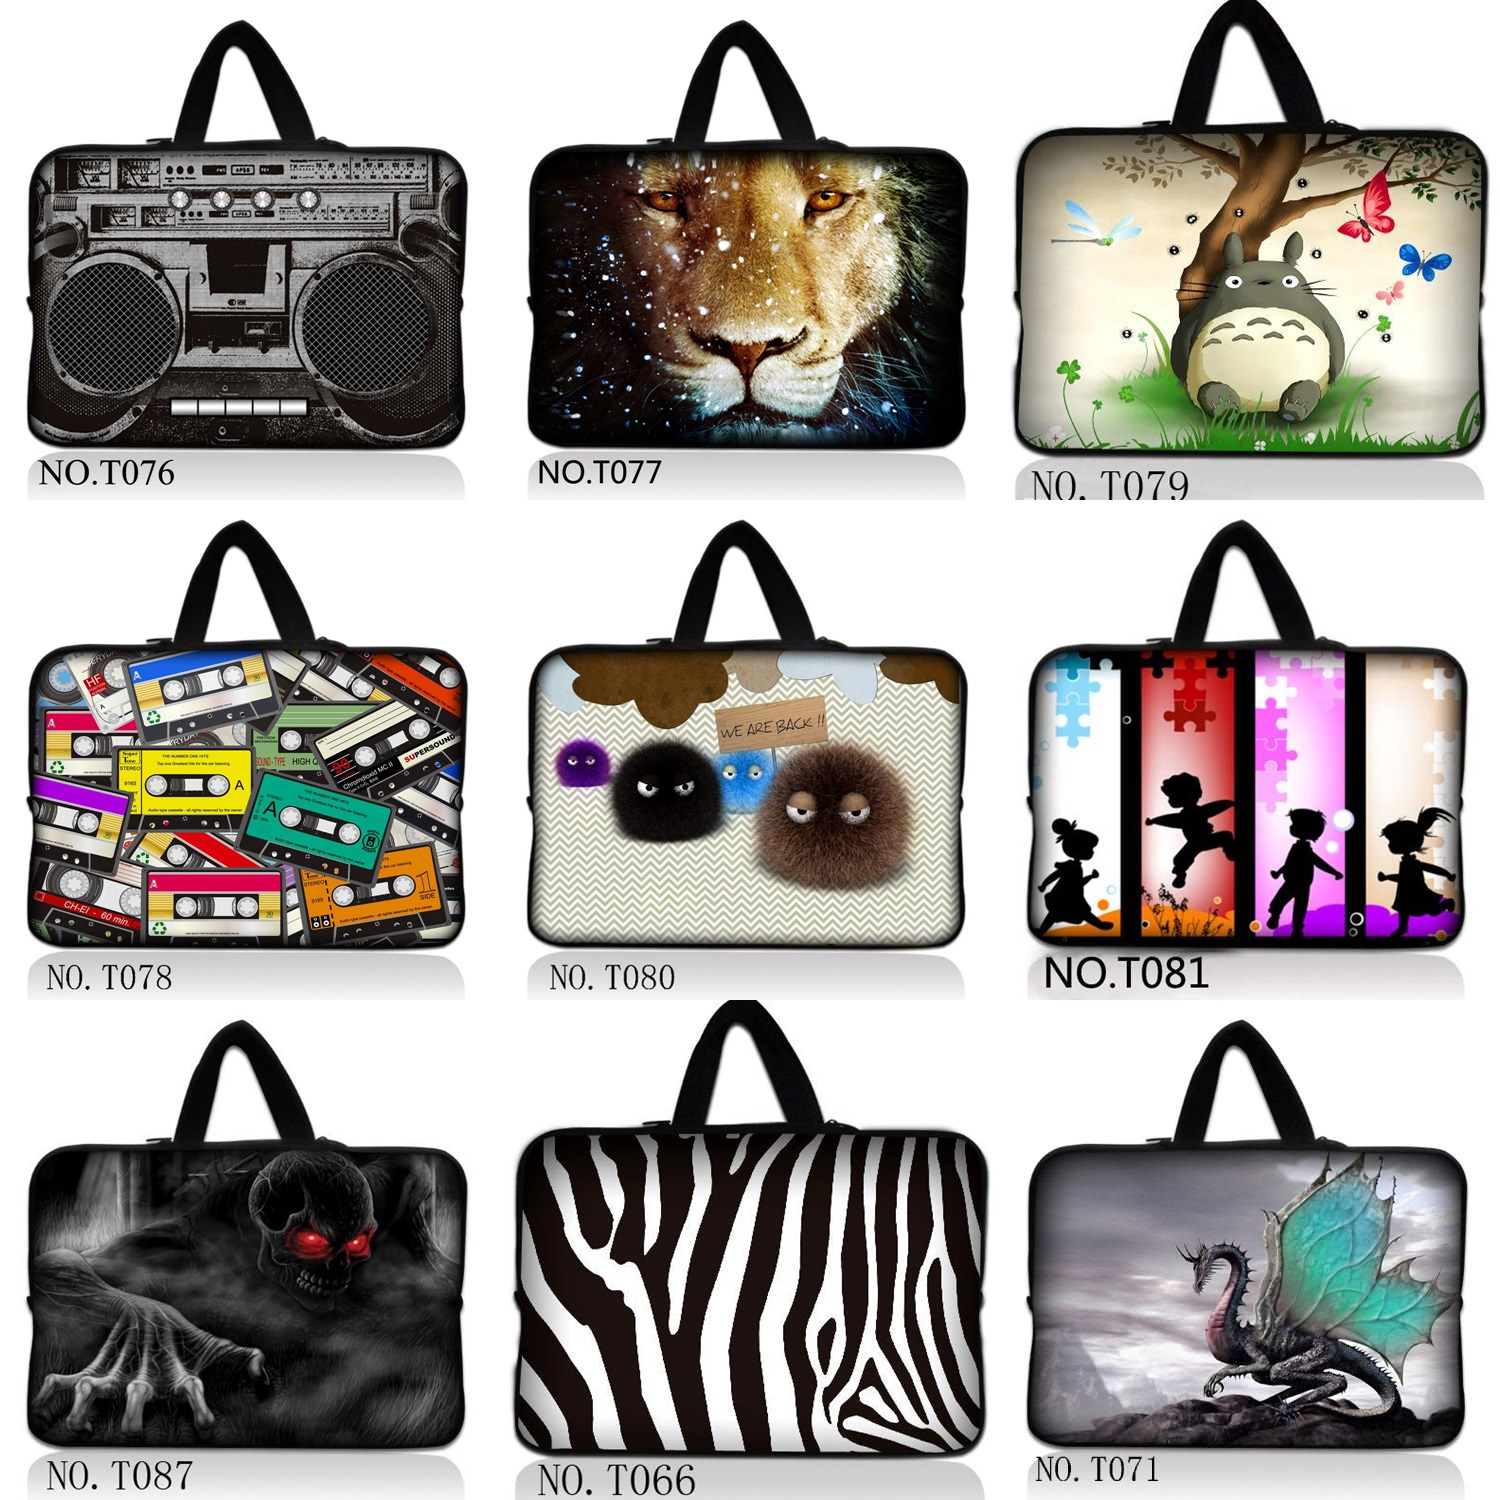 2016 Fashion Style Laptop bag 10 12 13.3 14 15.6 17 For iPad/ air laptop sleeve For macbook pro / air carrying case